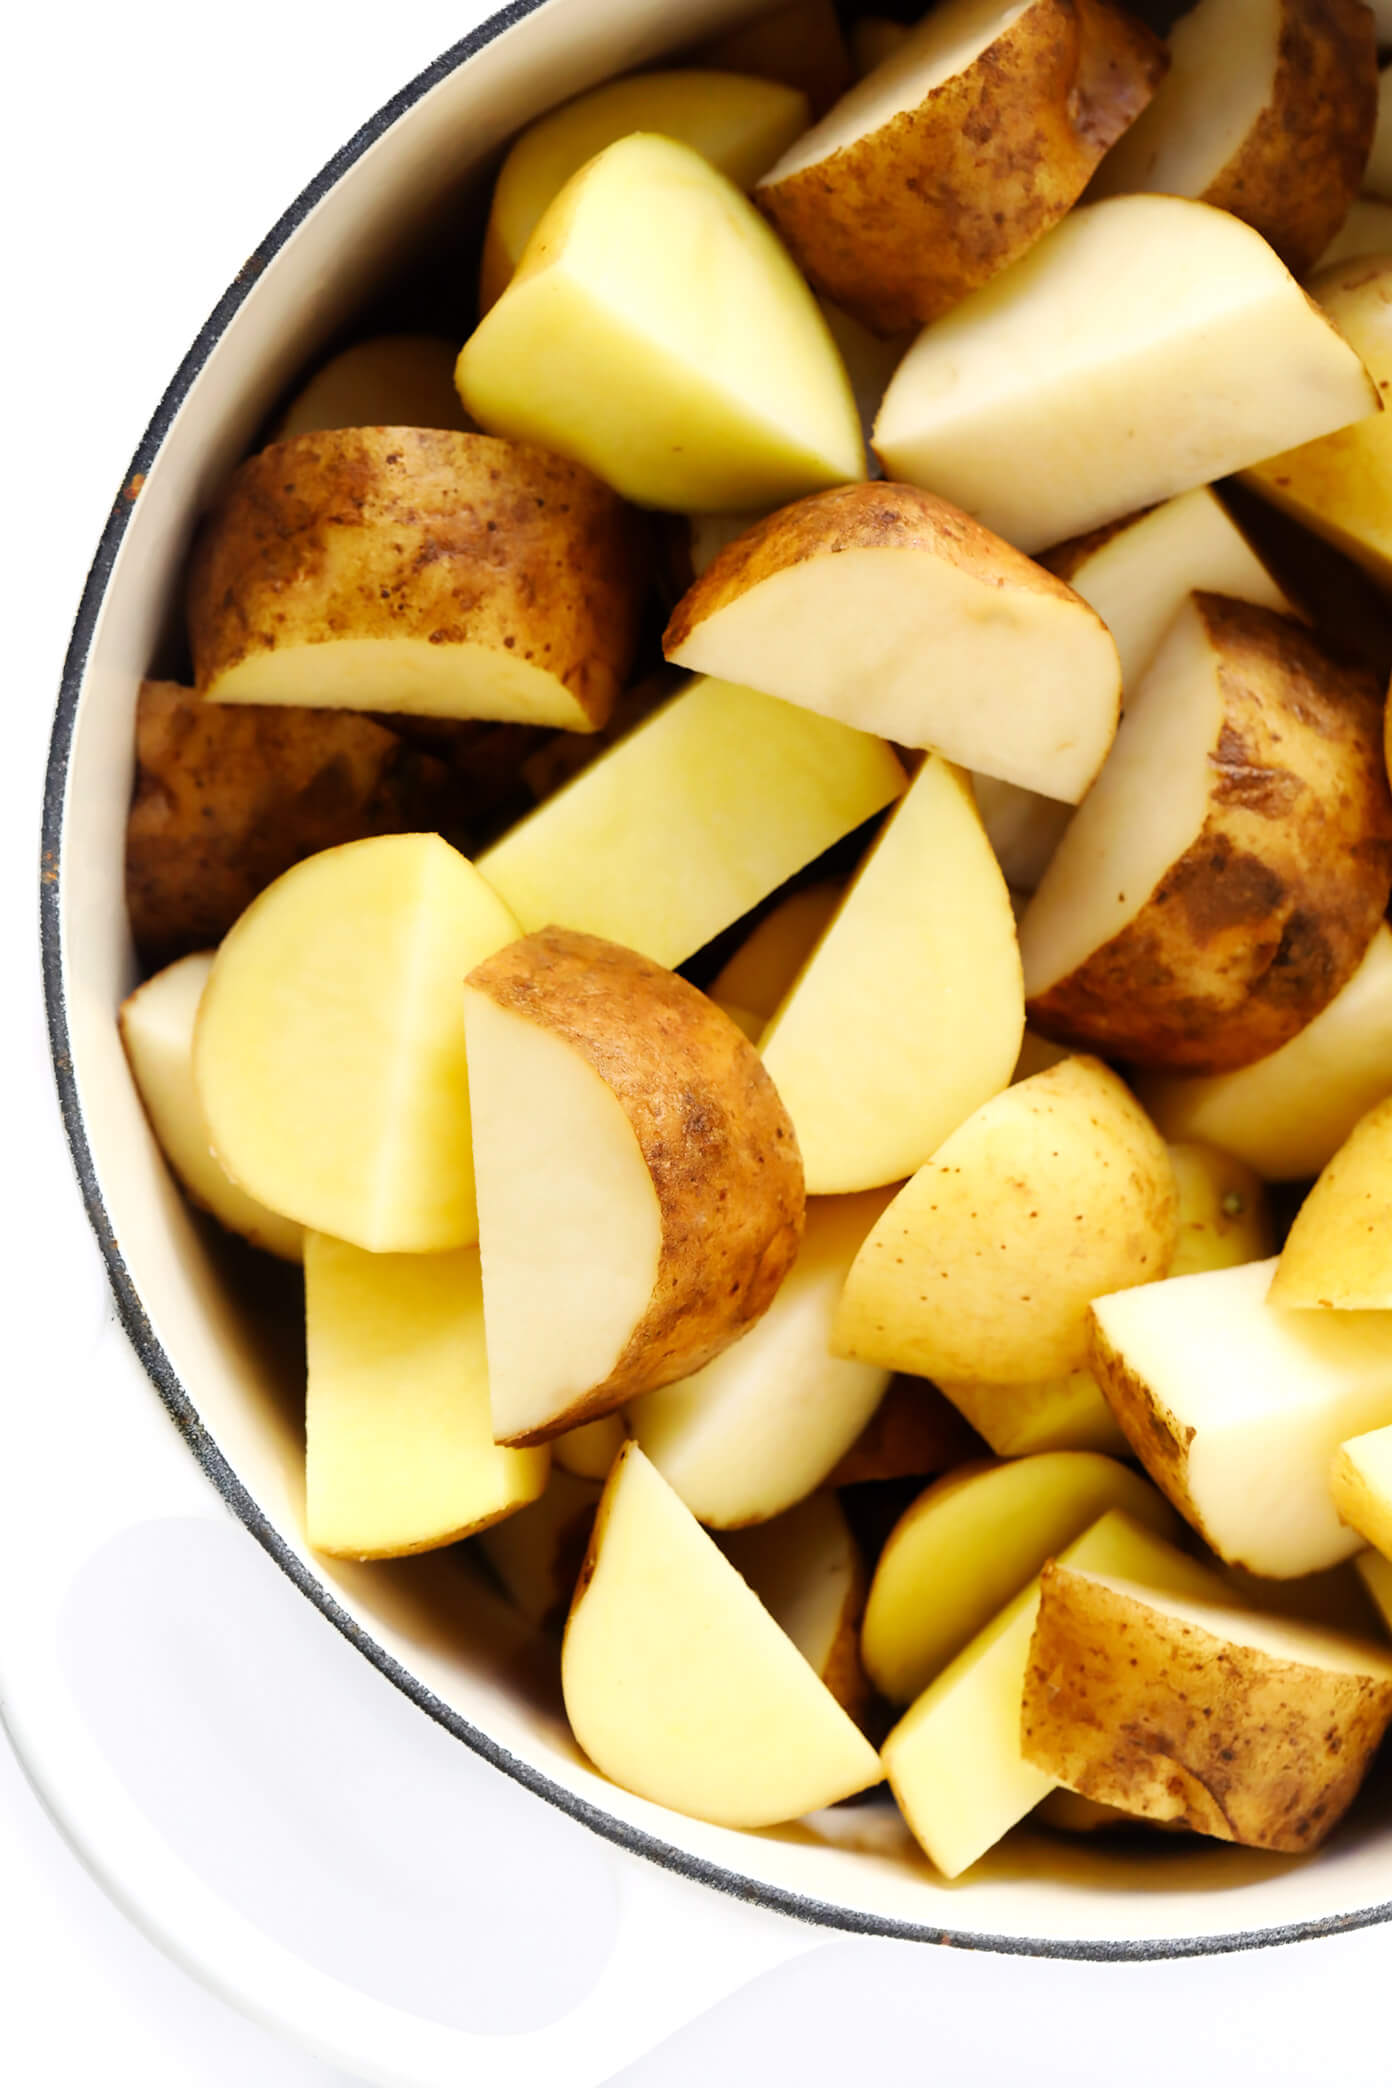 Best potatoes for mashed potatoes